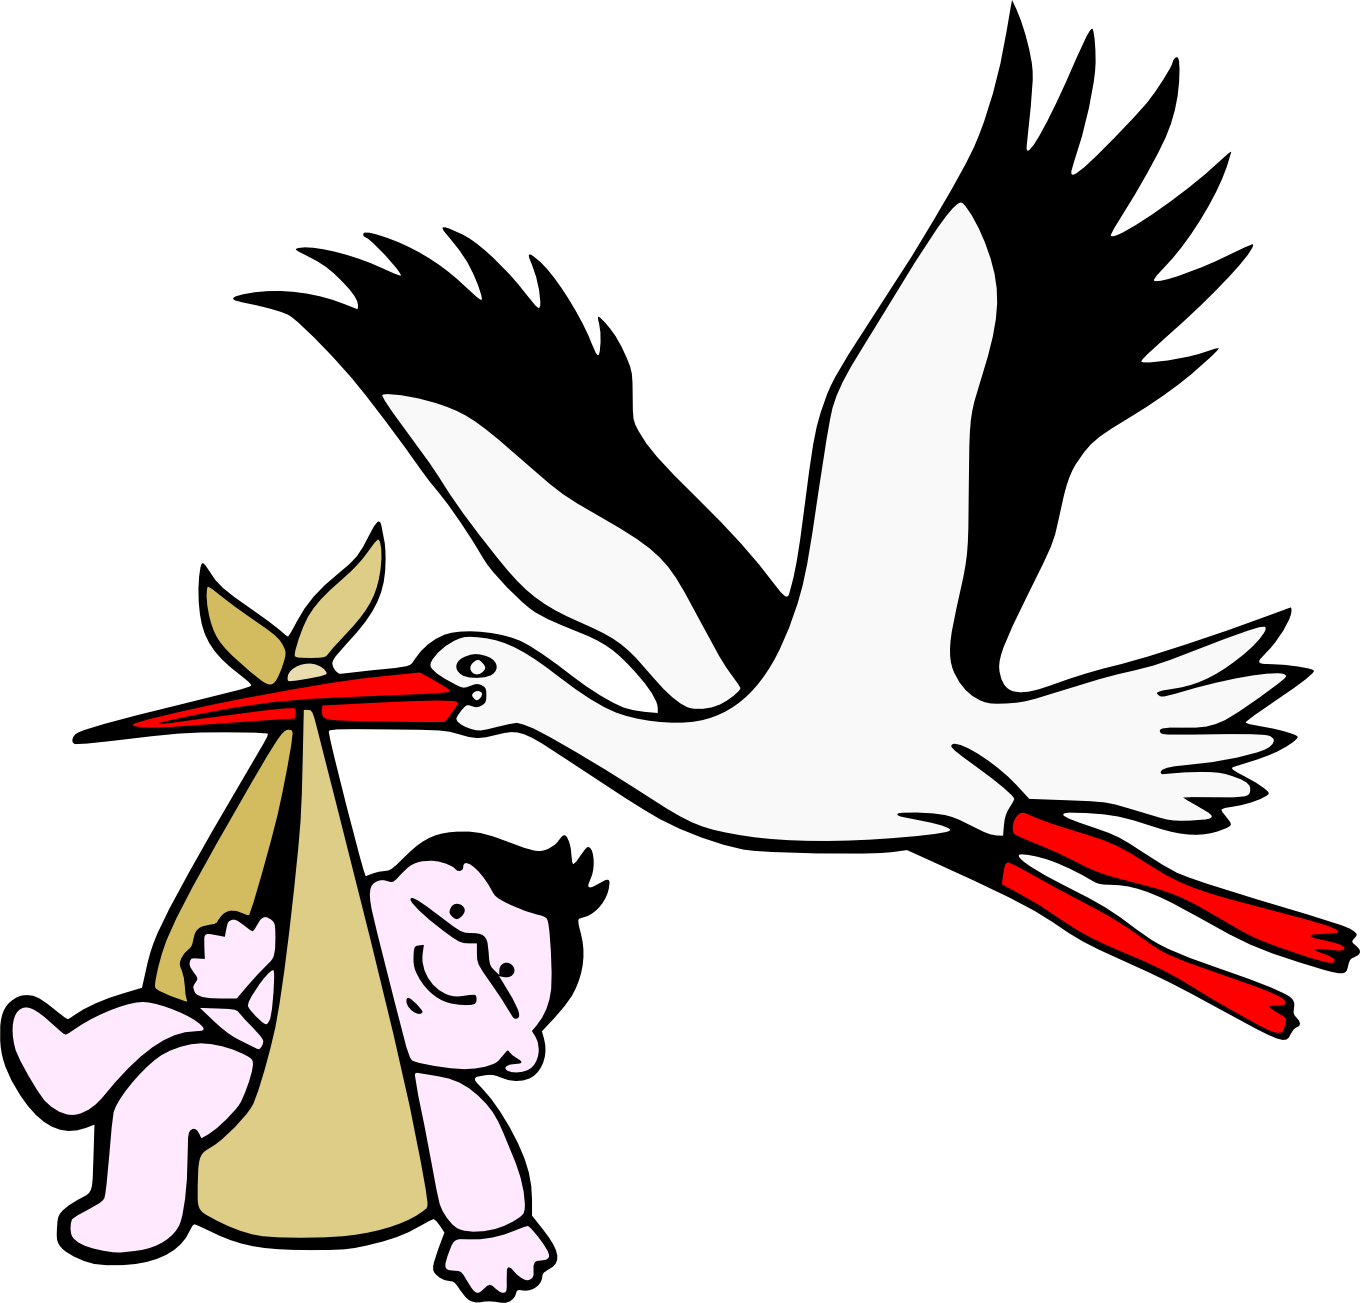 1360x1303 Filestork With New Born Child.png